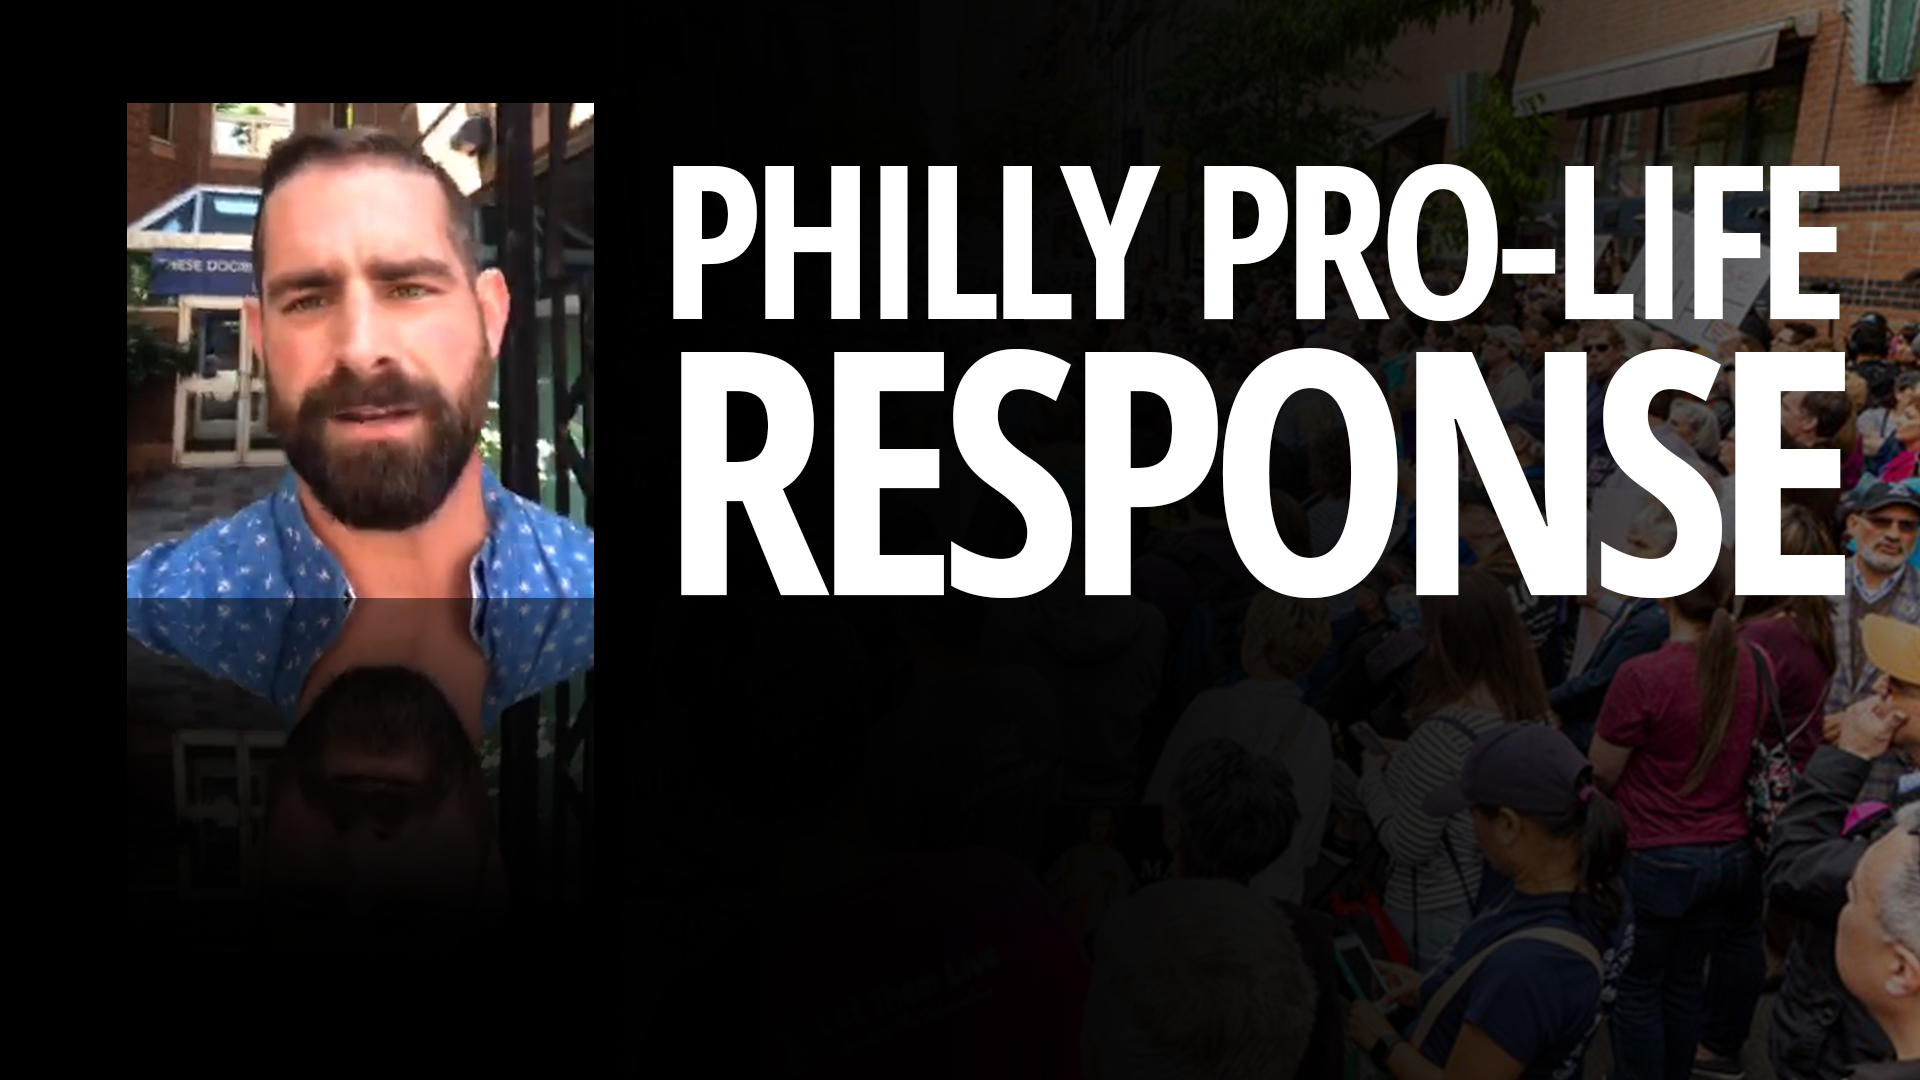 Philly Pro-Life Response